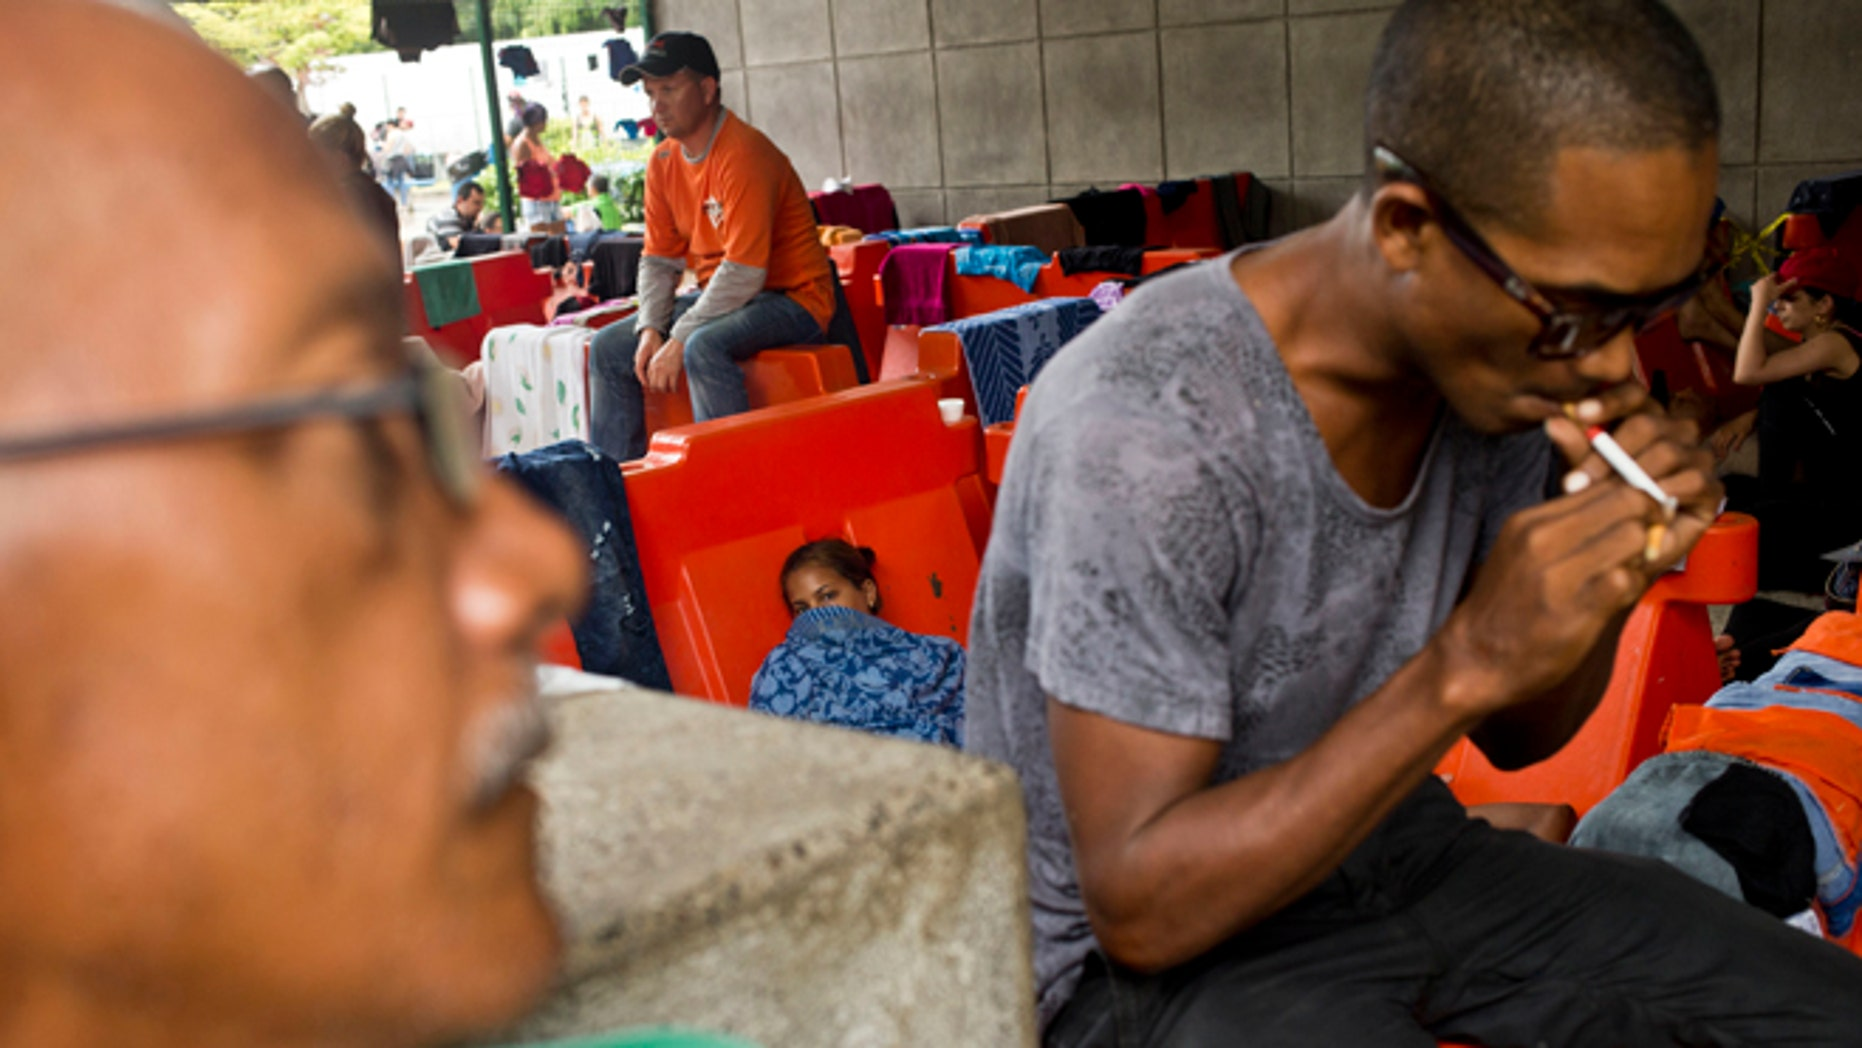 """Cuban migrants sit outside the immigration office in Peñas Blancas, Costa Rica, Tuesday, Nov. 17, 2015. More than 1,000 Cuban migrants heading north to the United States tried to cross the border from Costa Rica into Nicaragua, causing tensions to soar between the neighbors as security forces sought to turn them back. Nicaragua's government responded furiously on Sunday with a statement saying that Costa Rica """"had deliberately and irresponsibly thrown, and continues to throw"""" the Cuban migrants into its territory, violating its national sovereignty. (AP Photo/Esteban Felix)"""